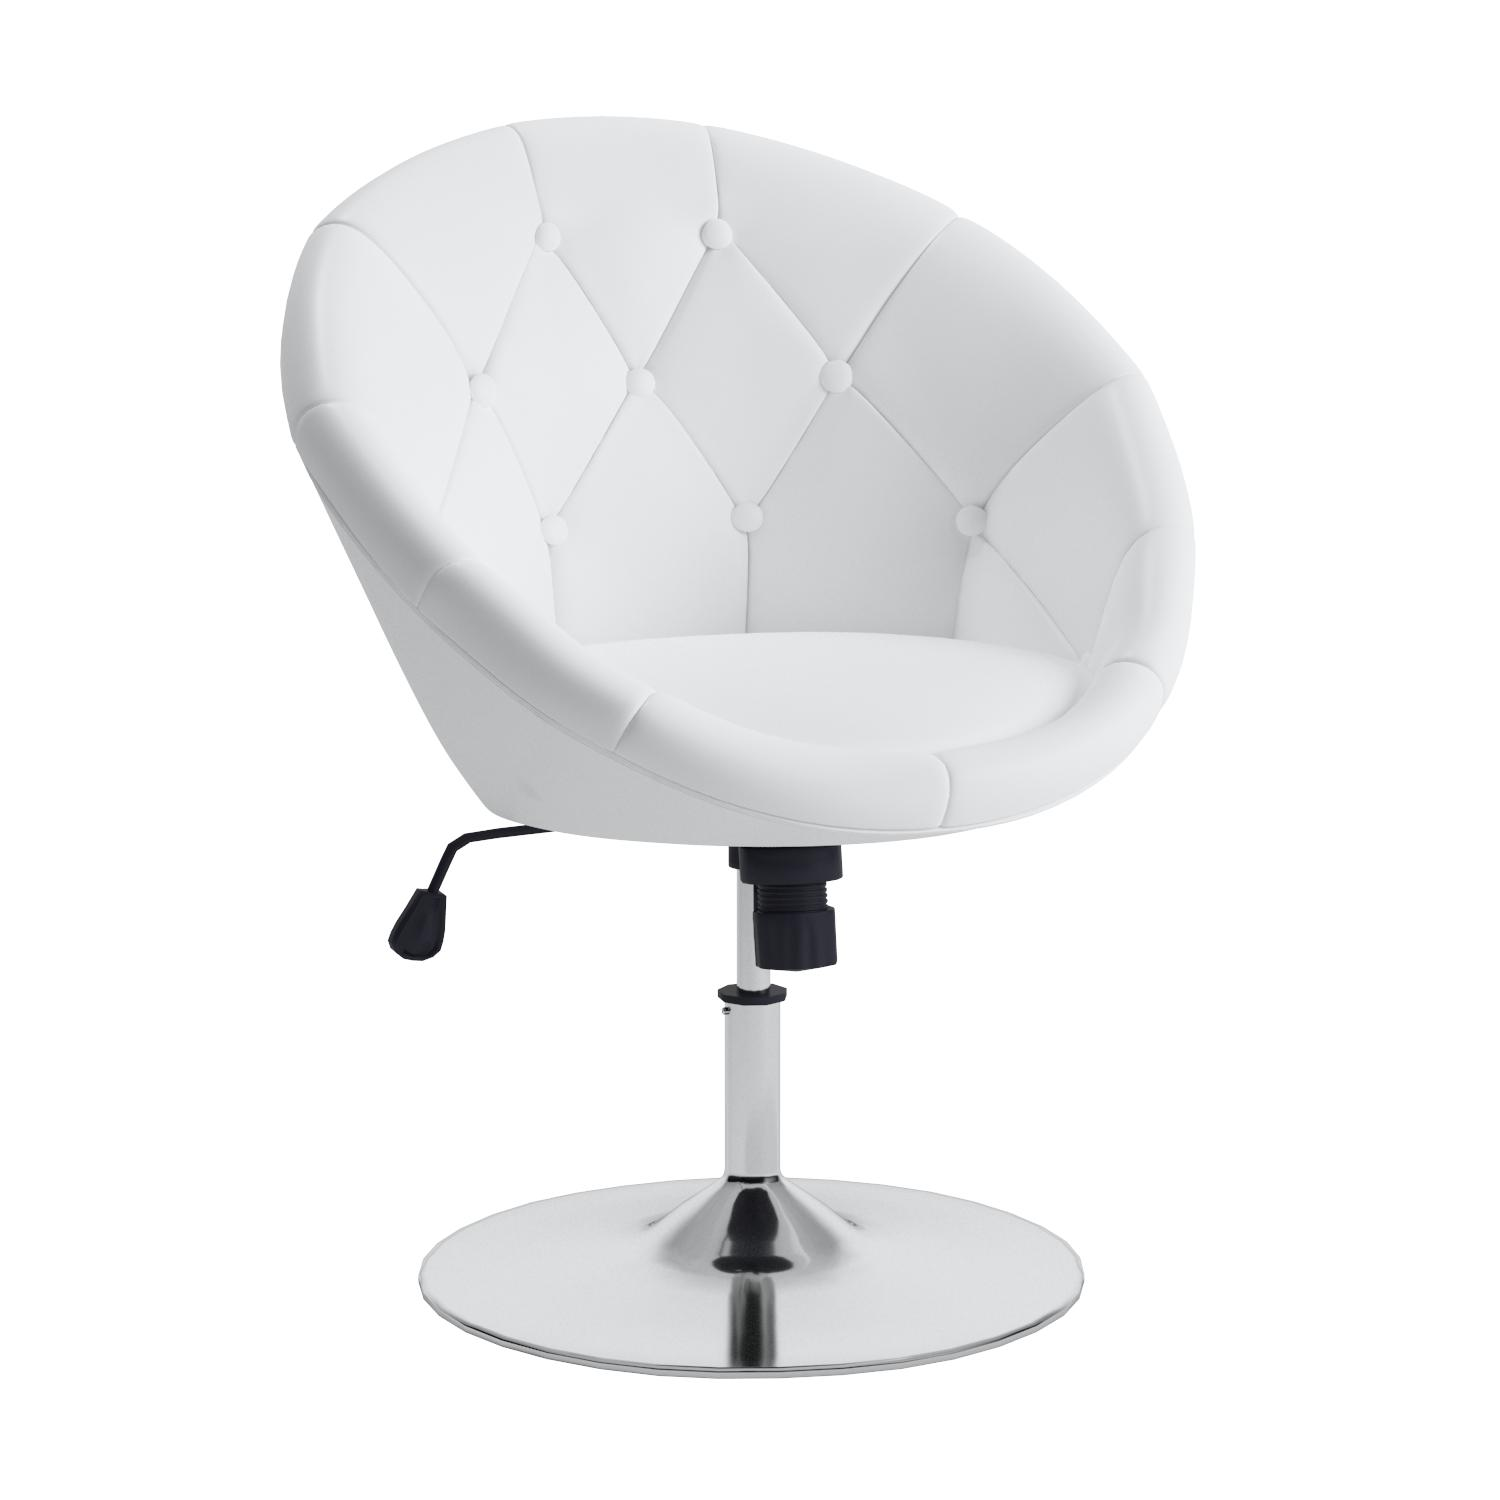 clifton roll to image chair chairs product white over office ot zoom desk acc